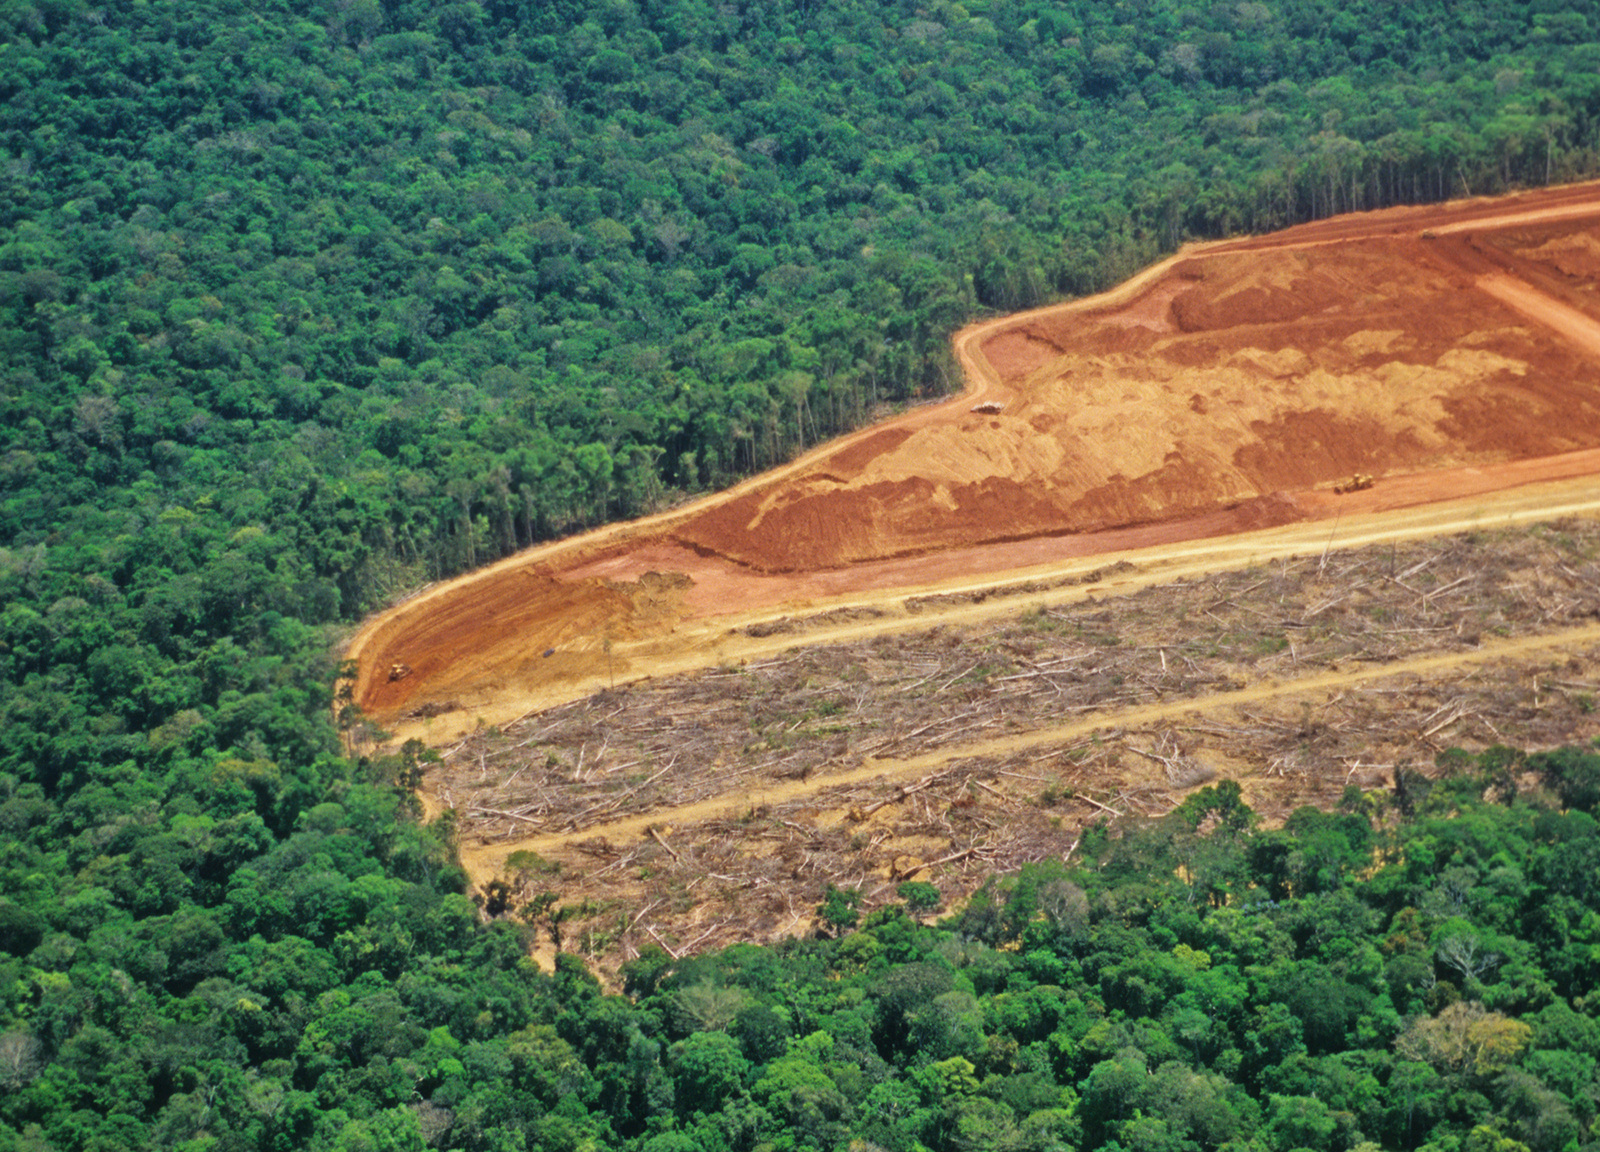 Amazon deforestation happens in remote areas where people are not usually exposed to it, contributing to the normalized perception that causes the shifting baseline. Photo credit: Conservation International